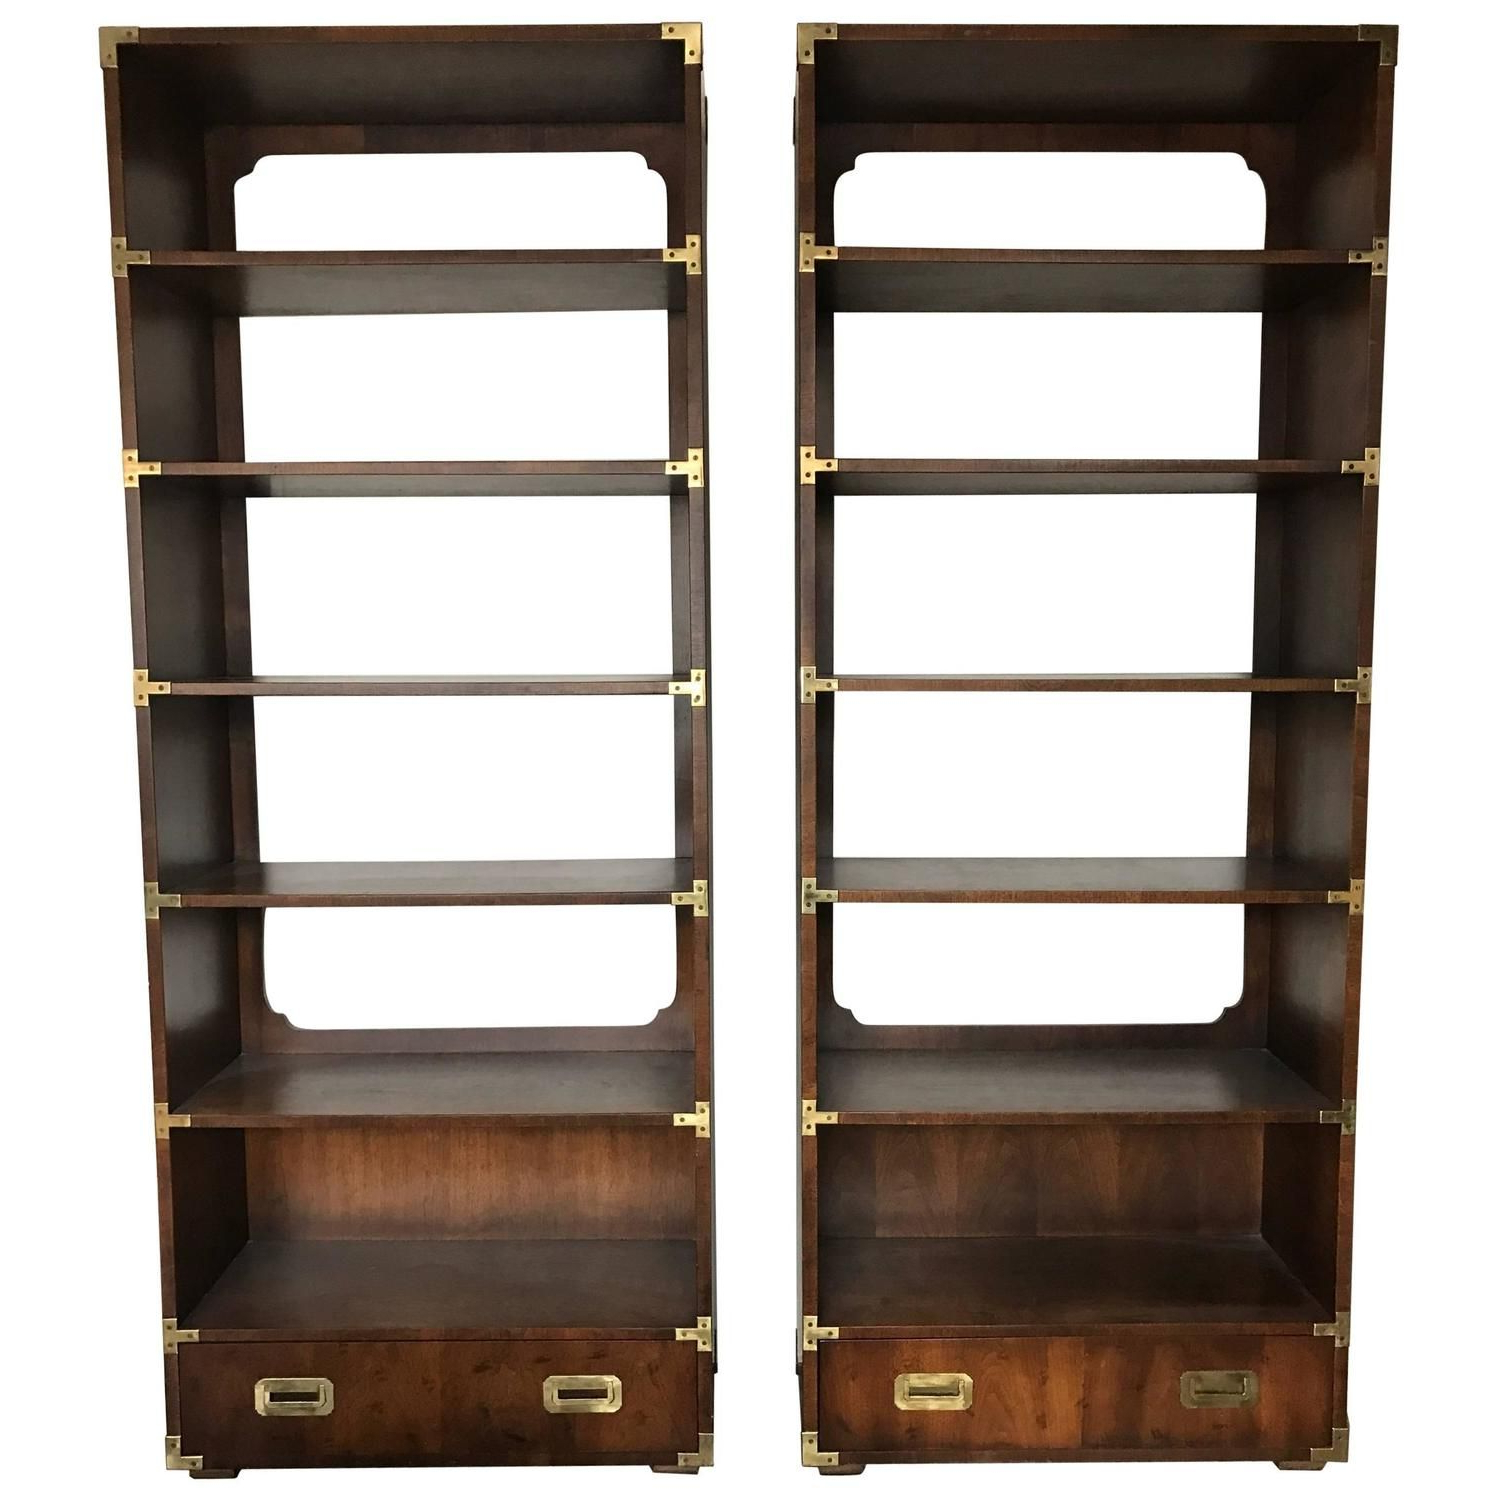 Earline Etagere Bookcases Intended For Preferred 1970s Vintage Campaign Bookshelf Unitshenredon (View 18 of 20)